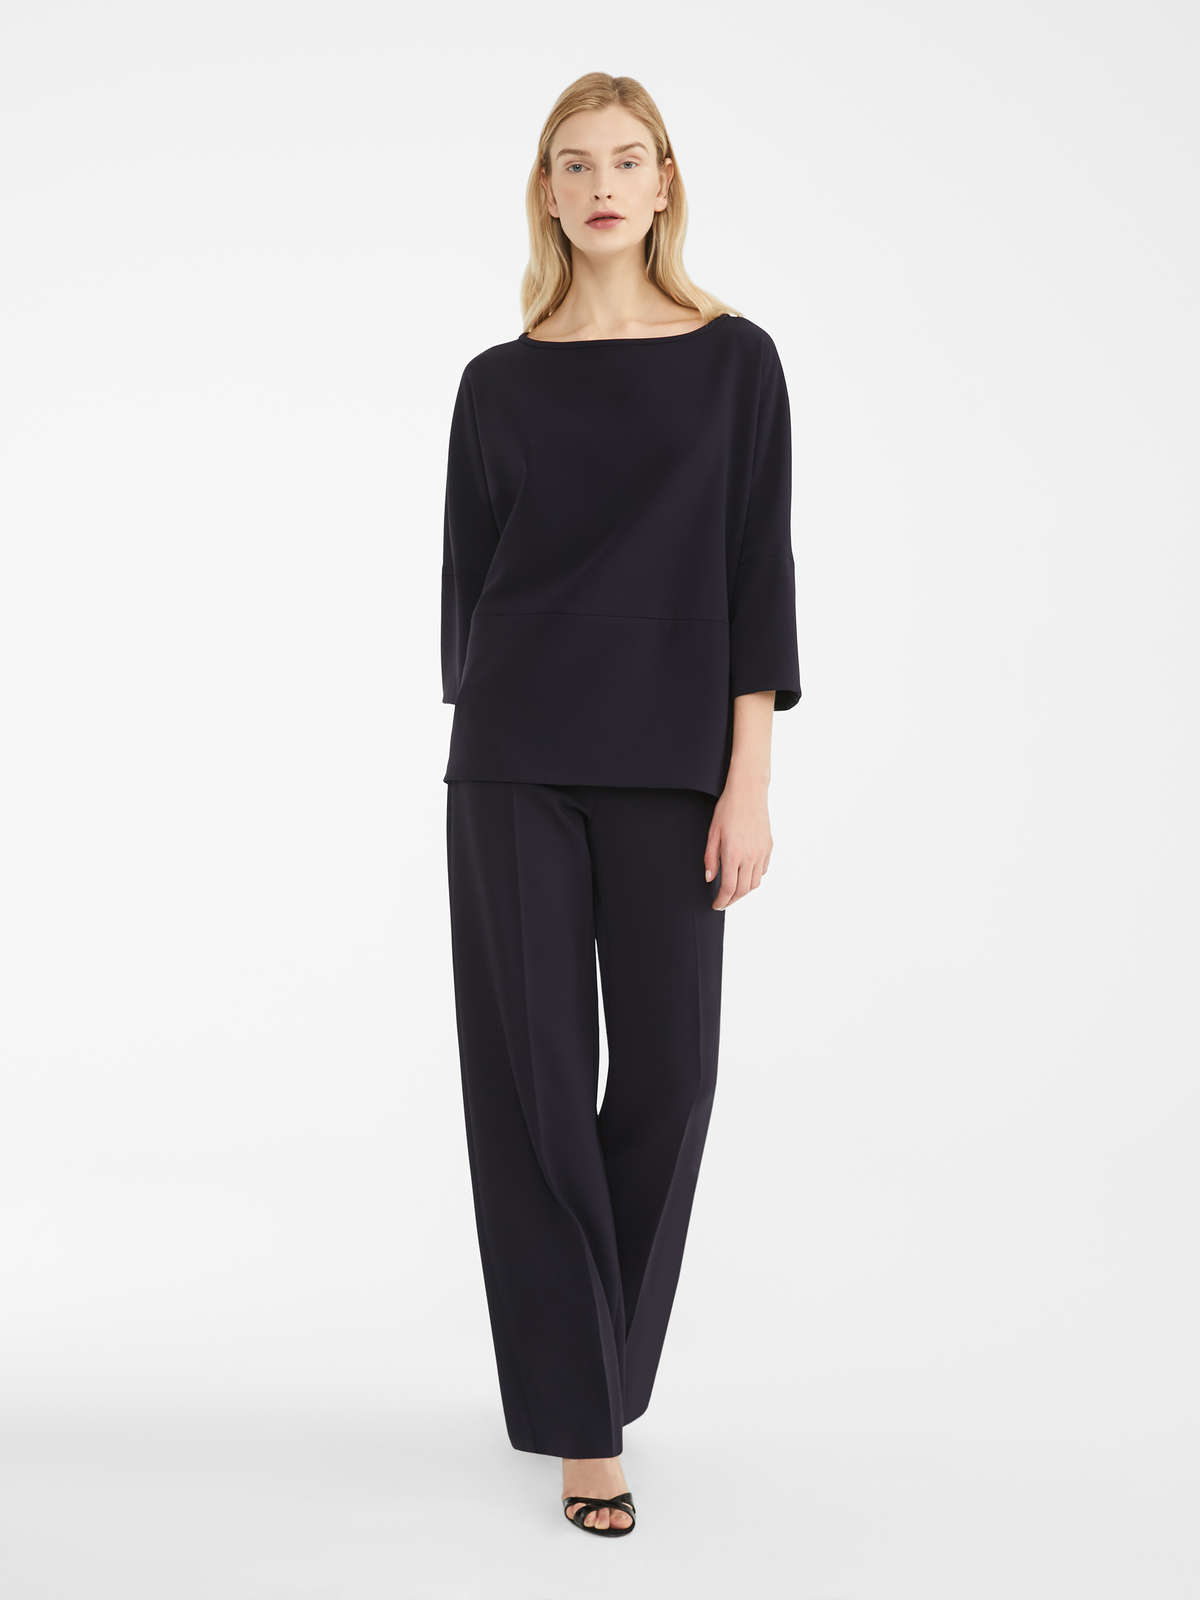 Tunic In Cady - Max Mara